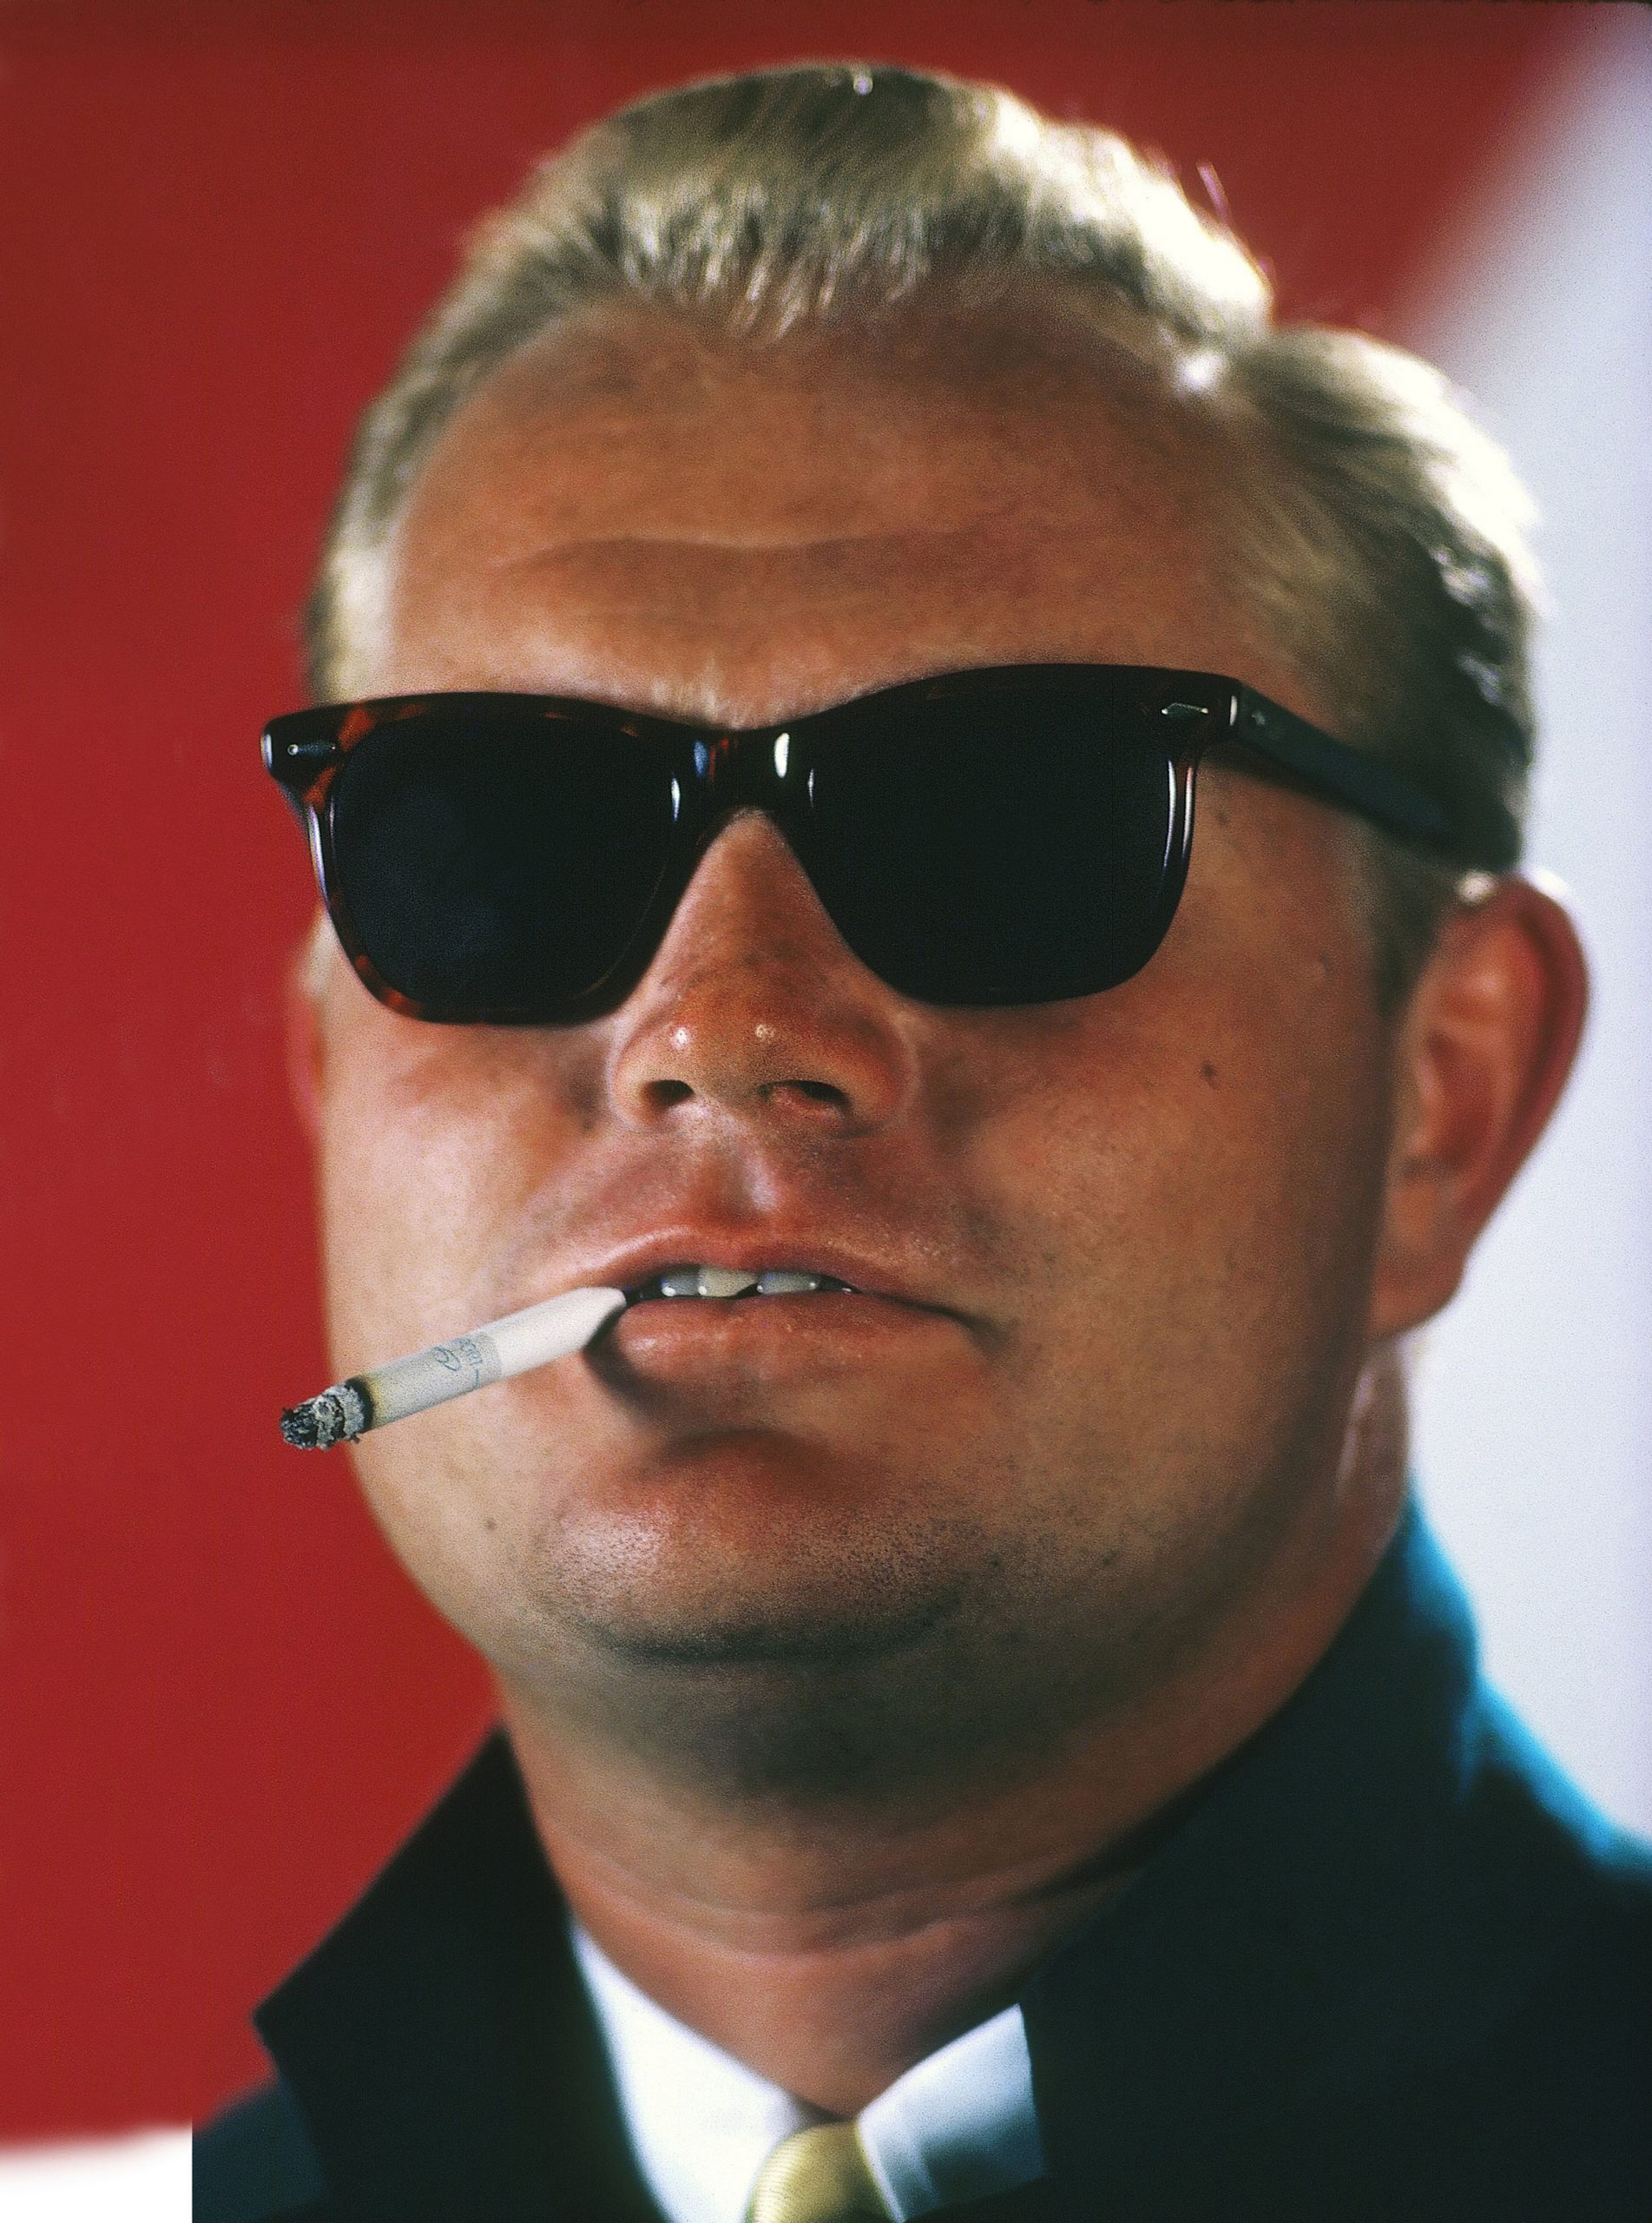 Closeup portrait of Jack Nicklaus wearing Masters green blazer and sunglasses with cigarette in mouth. West Palm Beach, FL. Photo by Walter Iooss Jr. /Sports Illustrated/Getty Images